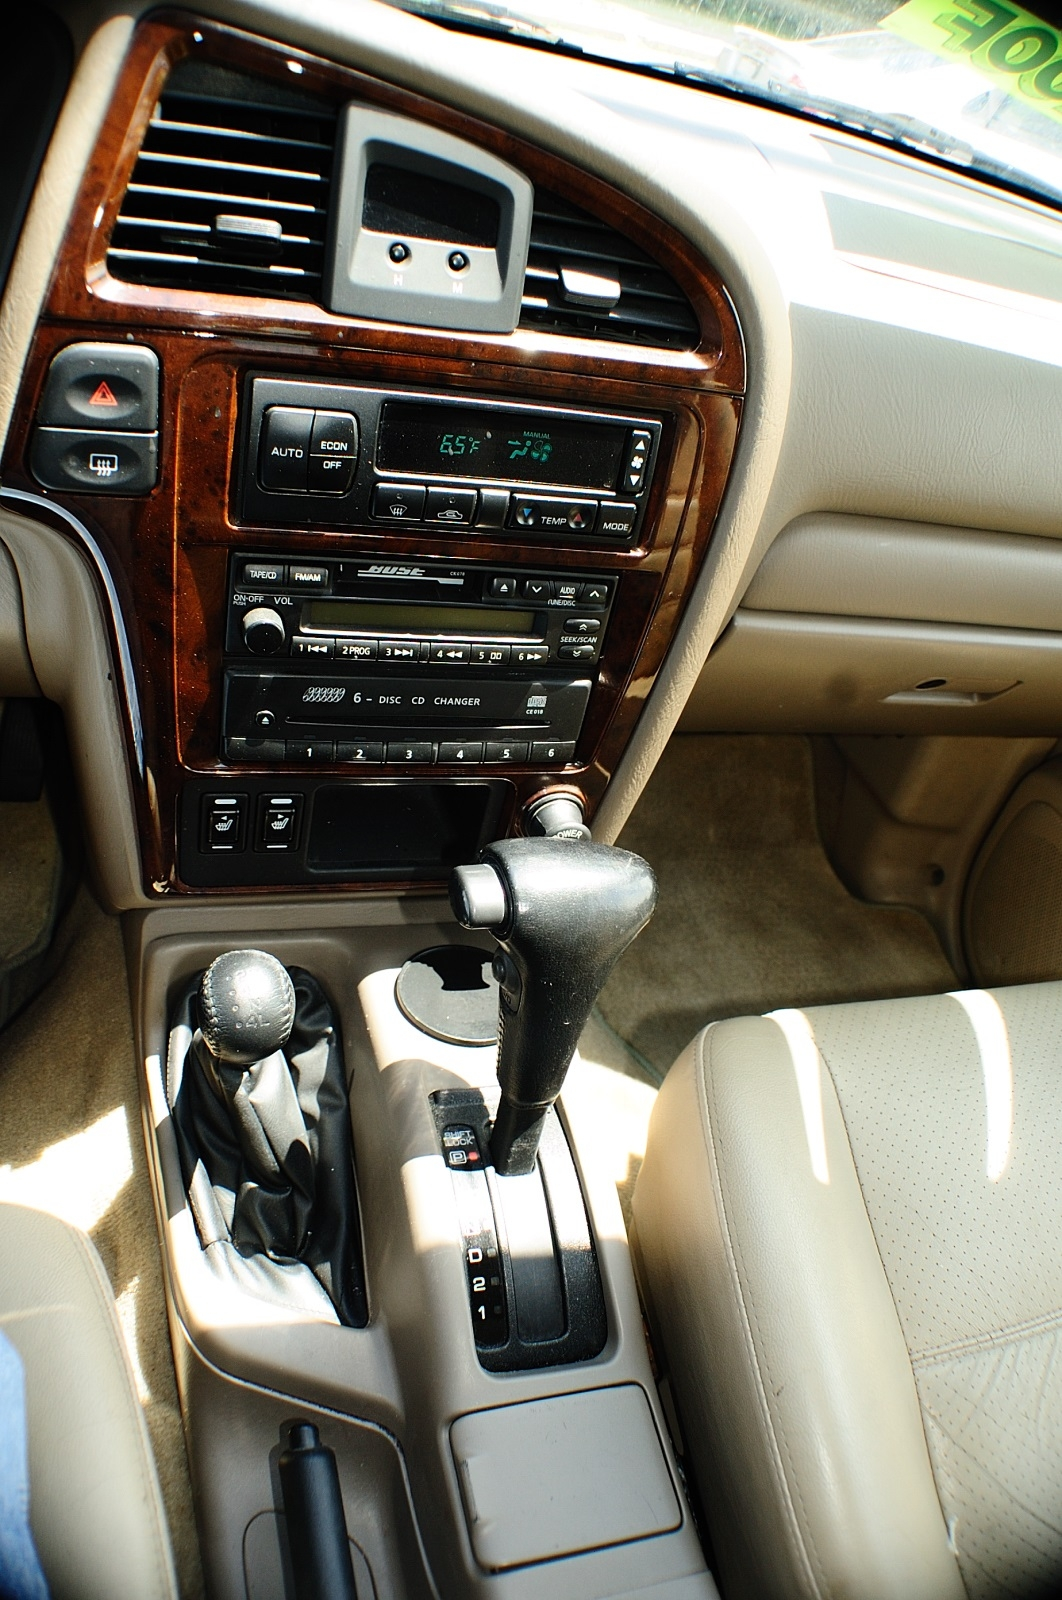 2001 Nissan Pathfinder White Used 4x4 SUV Sale Joliet Kenosha Naperville North Chicago Park Ridge